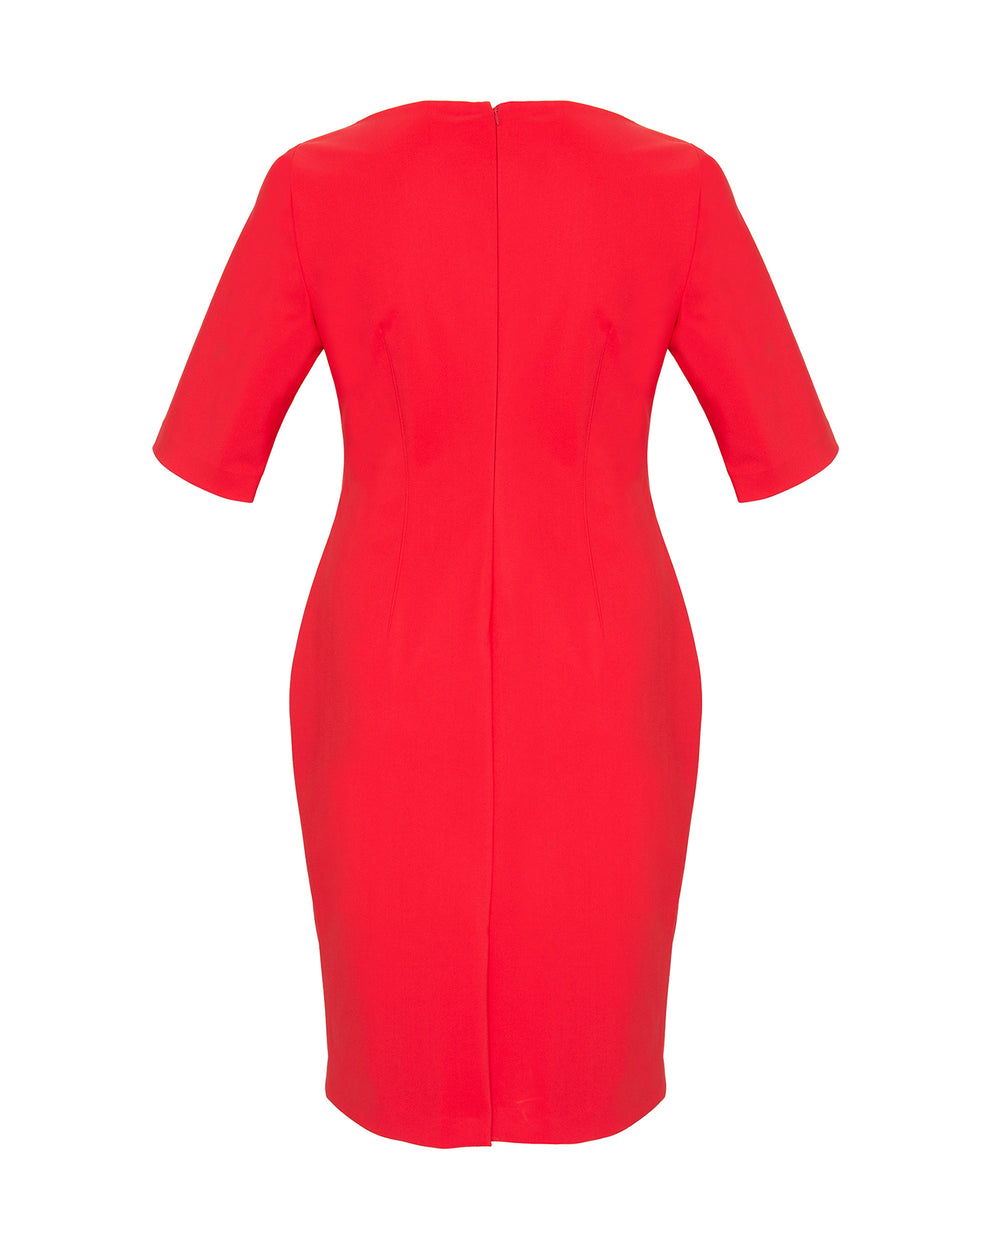 Bonded Neoprene Boat Neck Sheath Dress